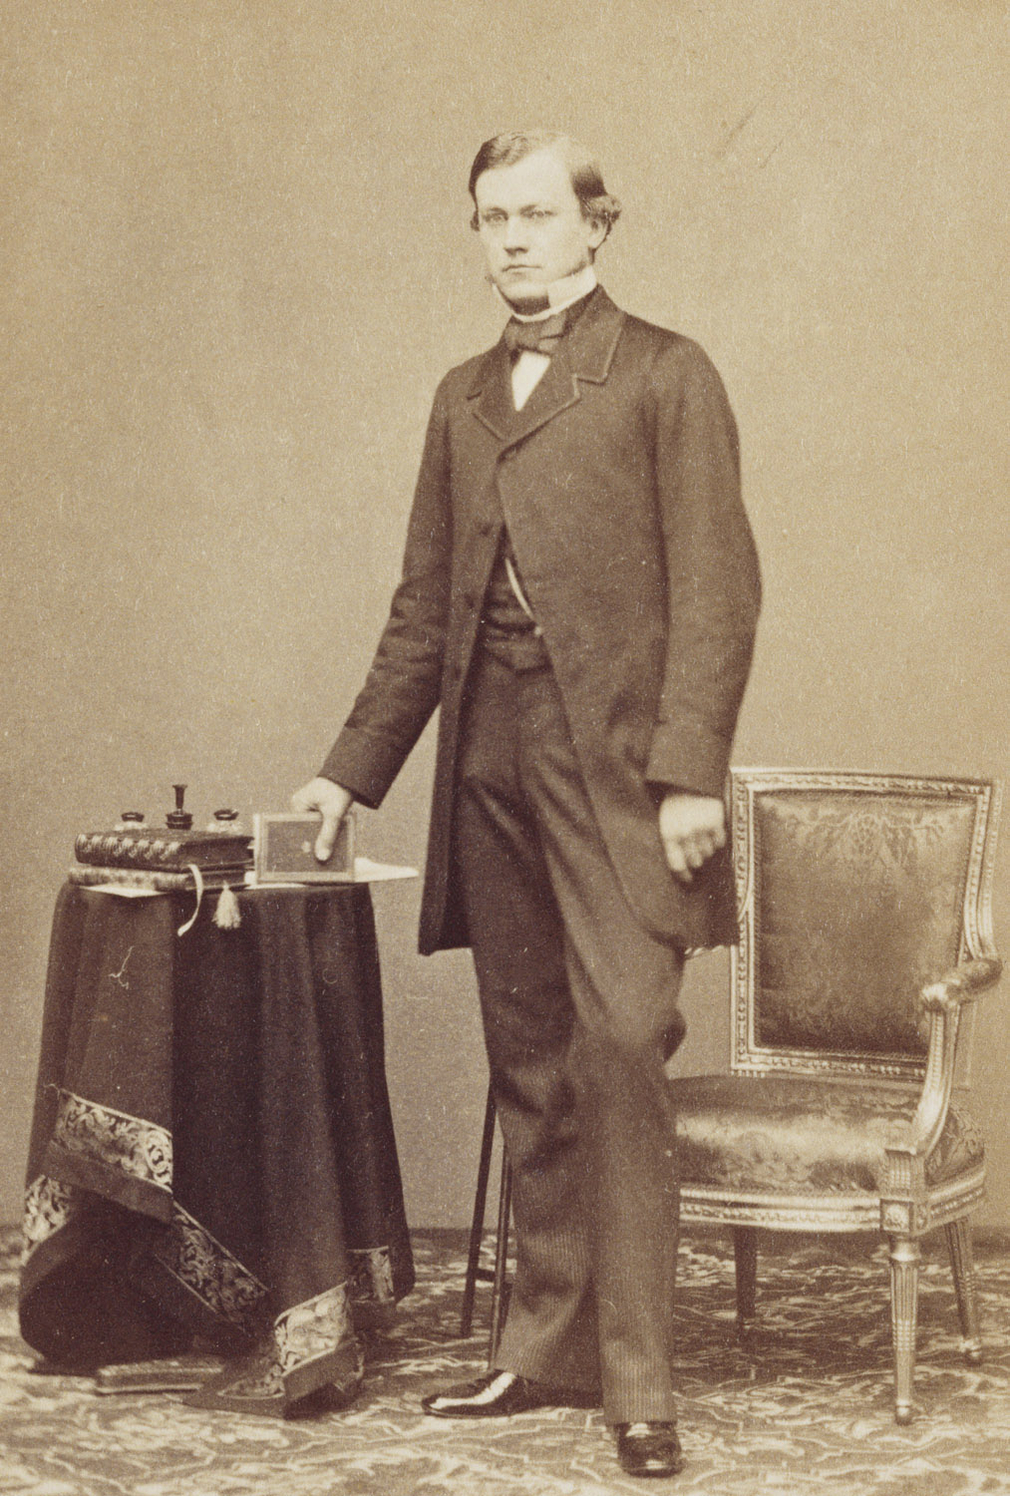 Photograph of CarlRuland, standing beside a chair, holding a book in his right hand, looking at the camera. He was an art and literary historian; Private secretary to Prince Albert and assisted with the Raphael Project.